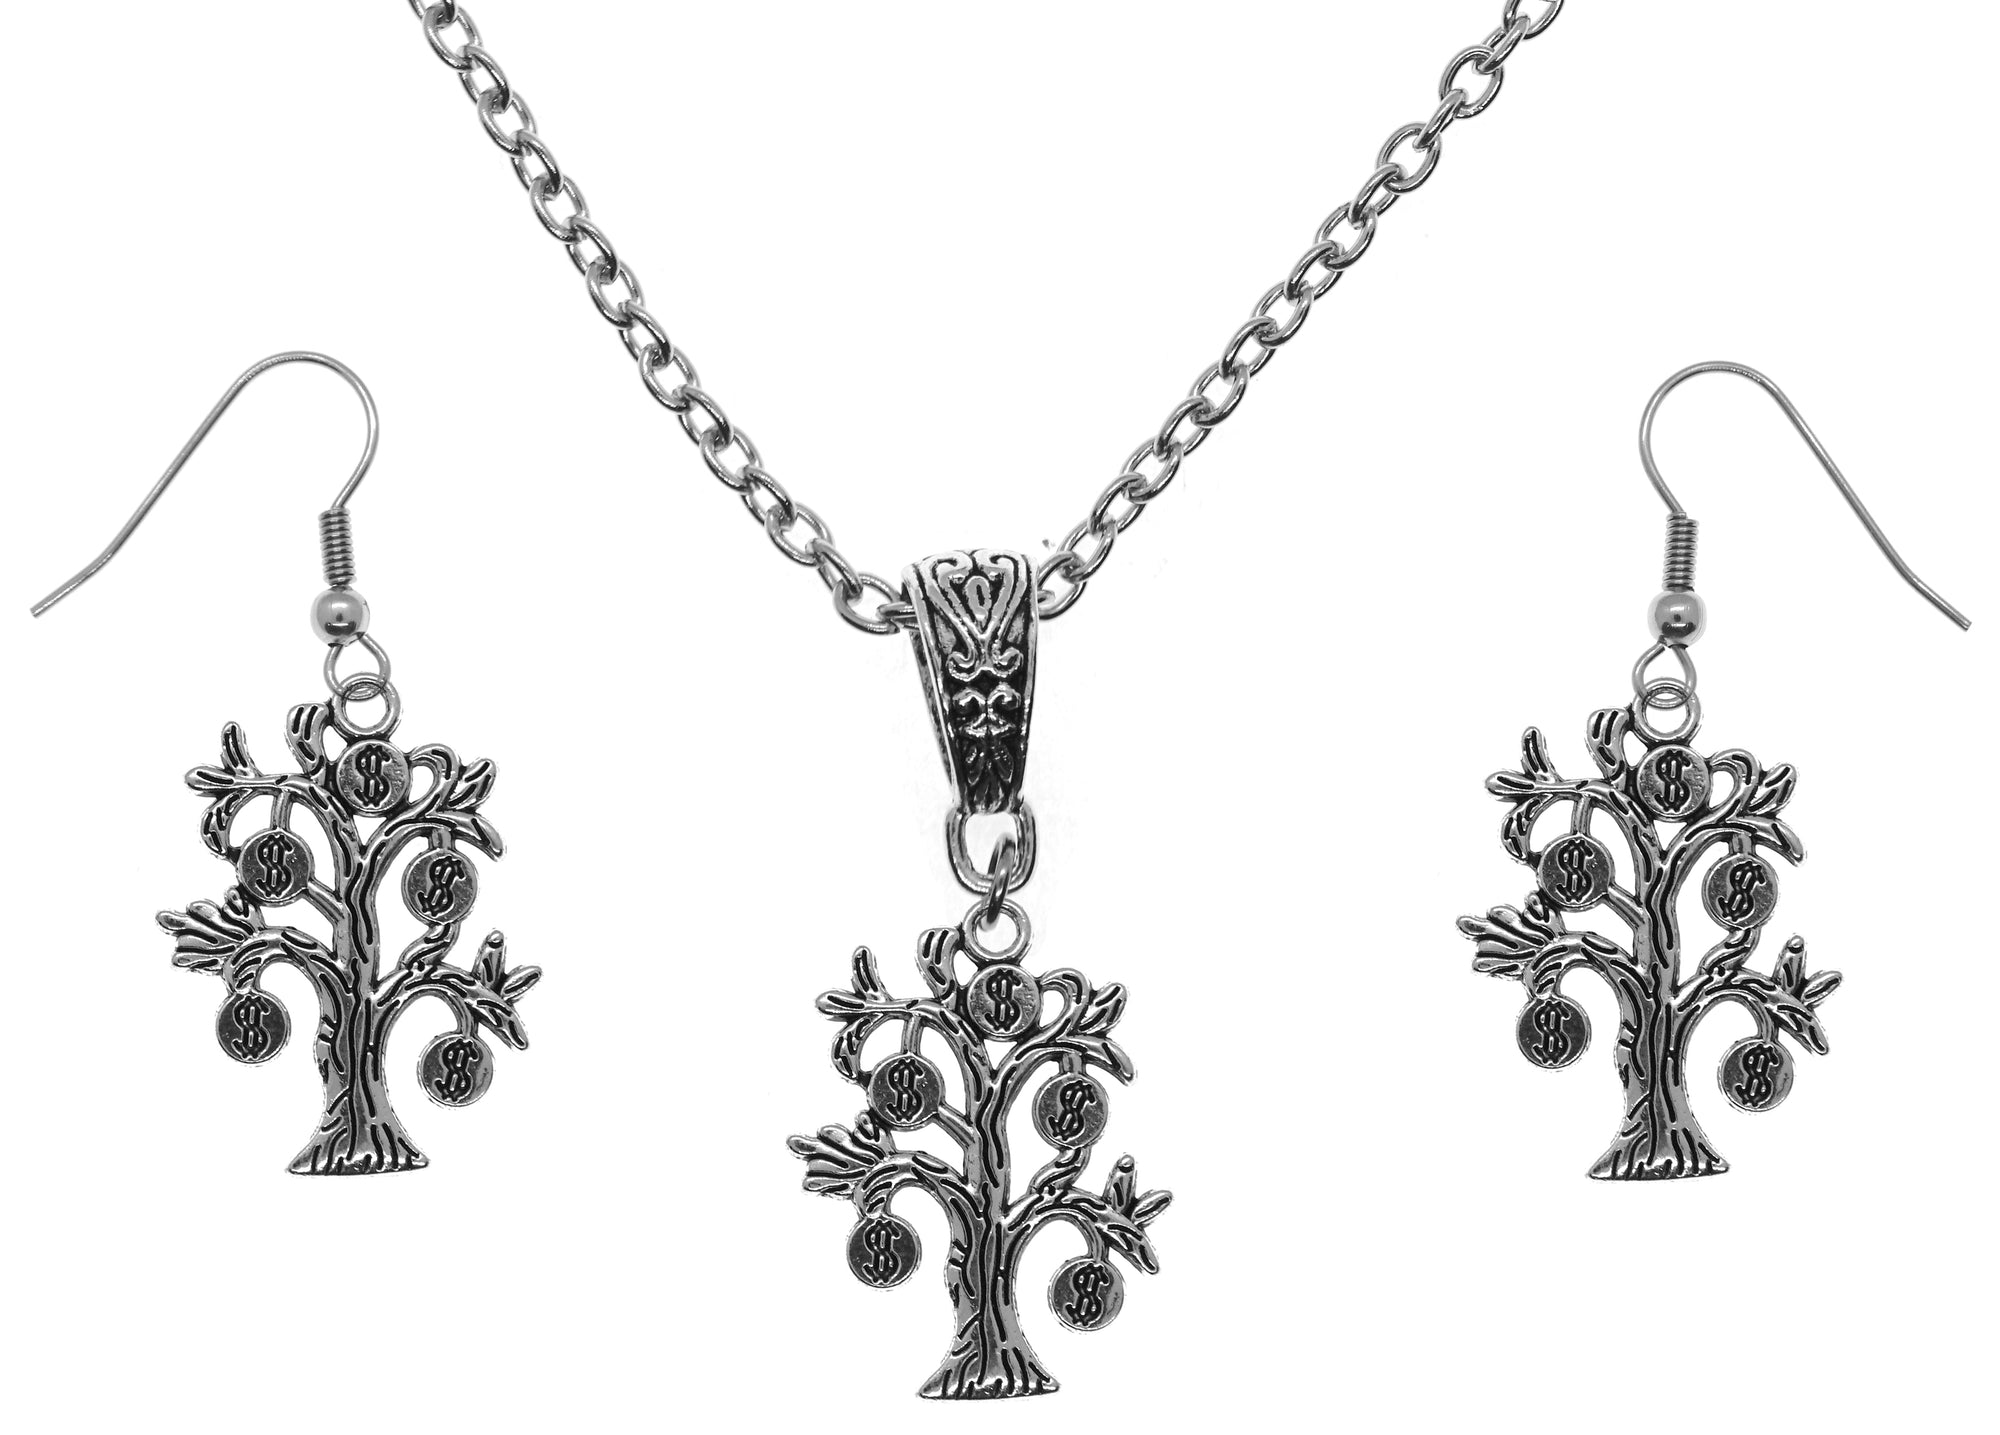 Big Lucky Money Tree Law of Attraction Magic Silver Charm Chain Necklace and Earrings Set